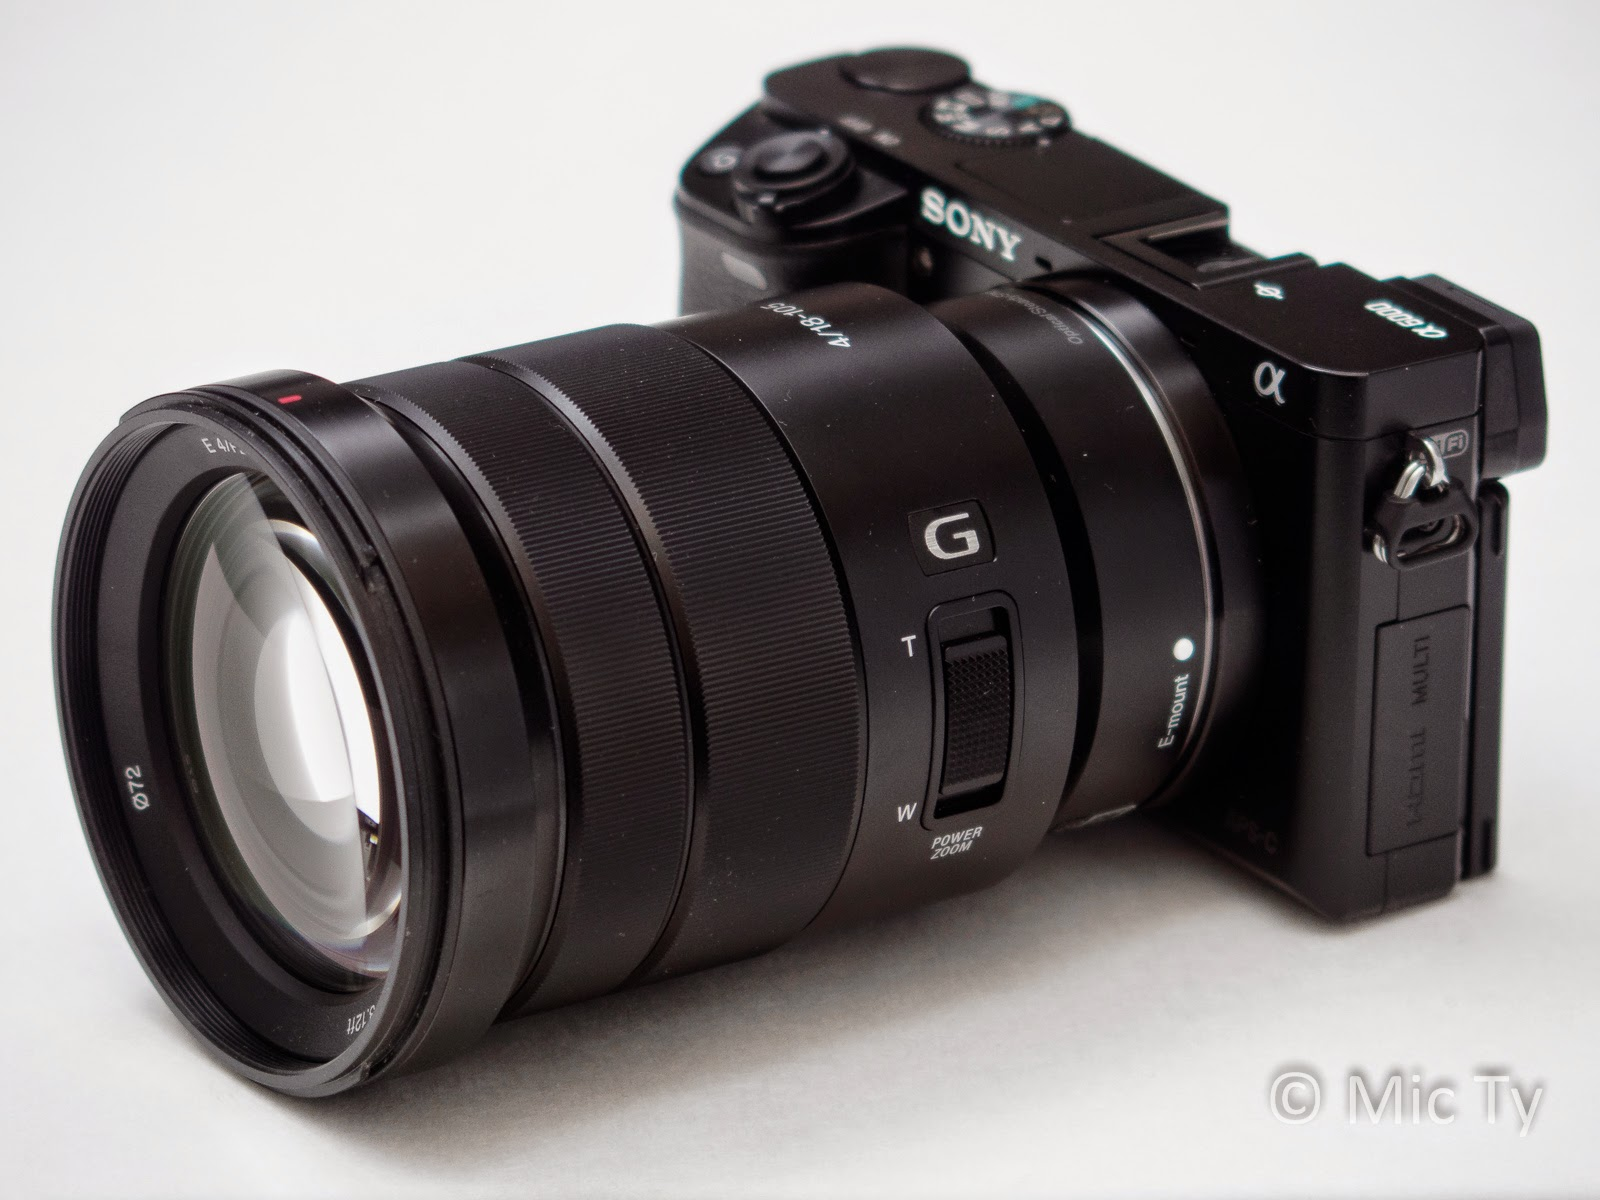 sony 18 105. sony 18-105 f4 g oss review 18 105